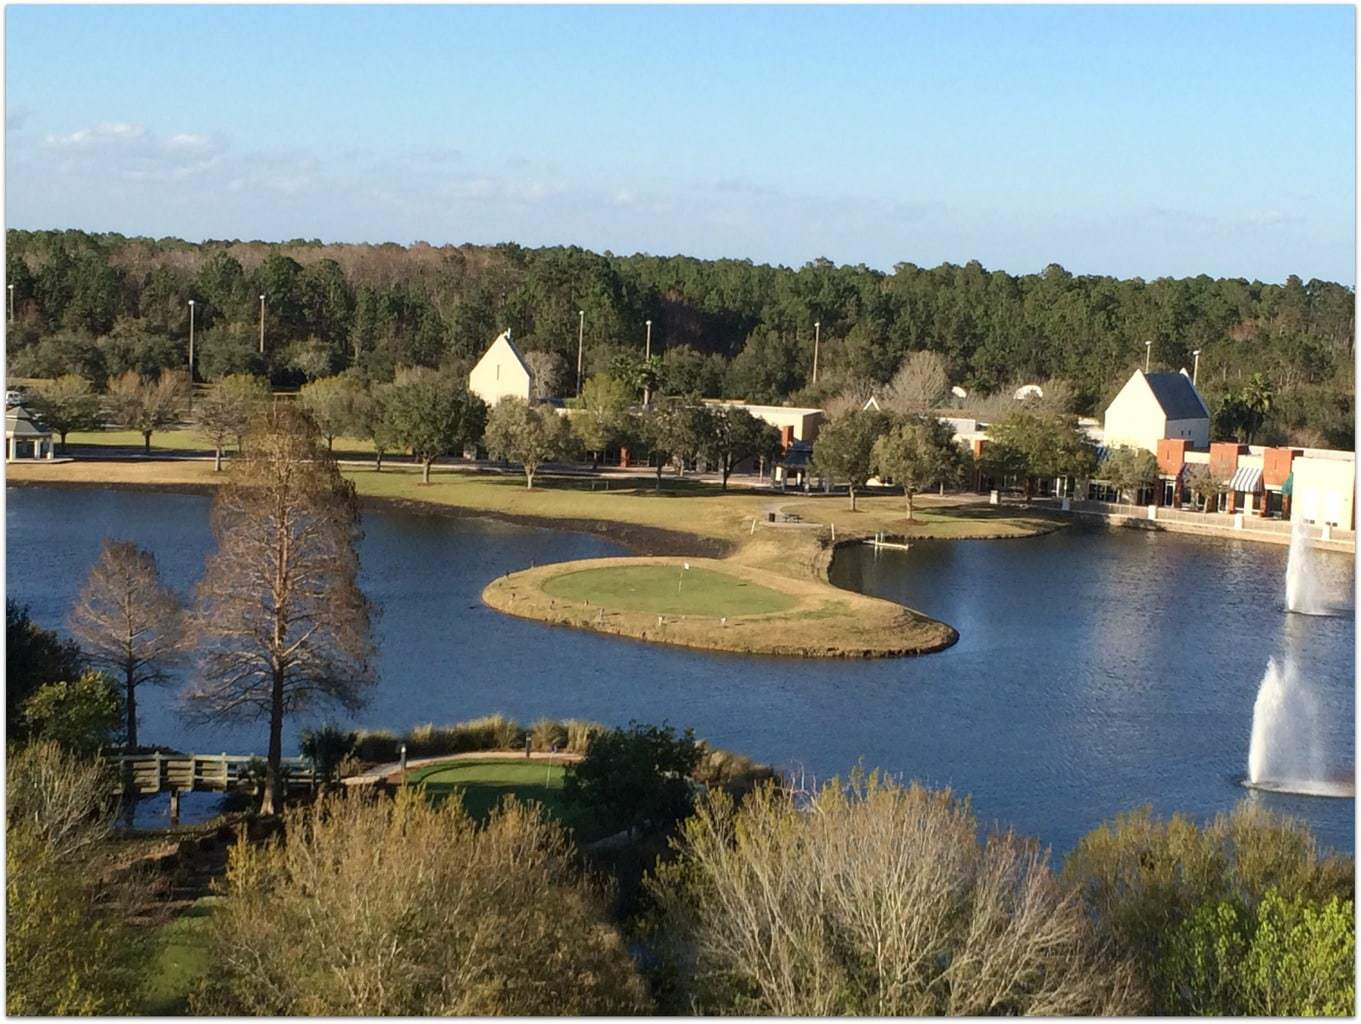 The Renaissance World Golf Village is always such a pleasure. With a choice of a standard guest room, a junior suite, or a one bedroom suite, there is a room that works for just about everyone.